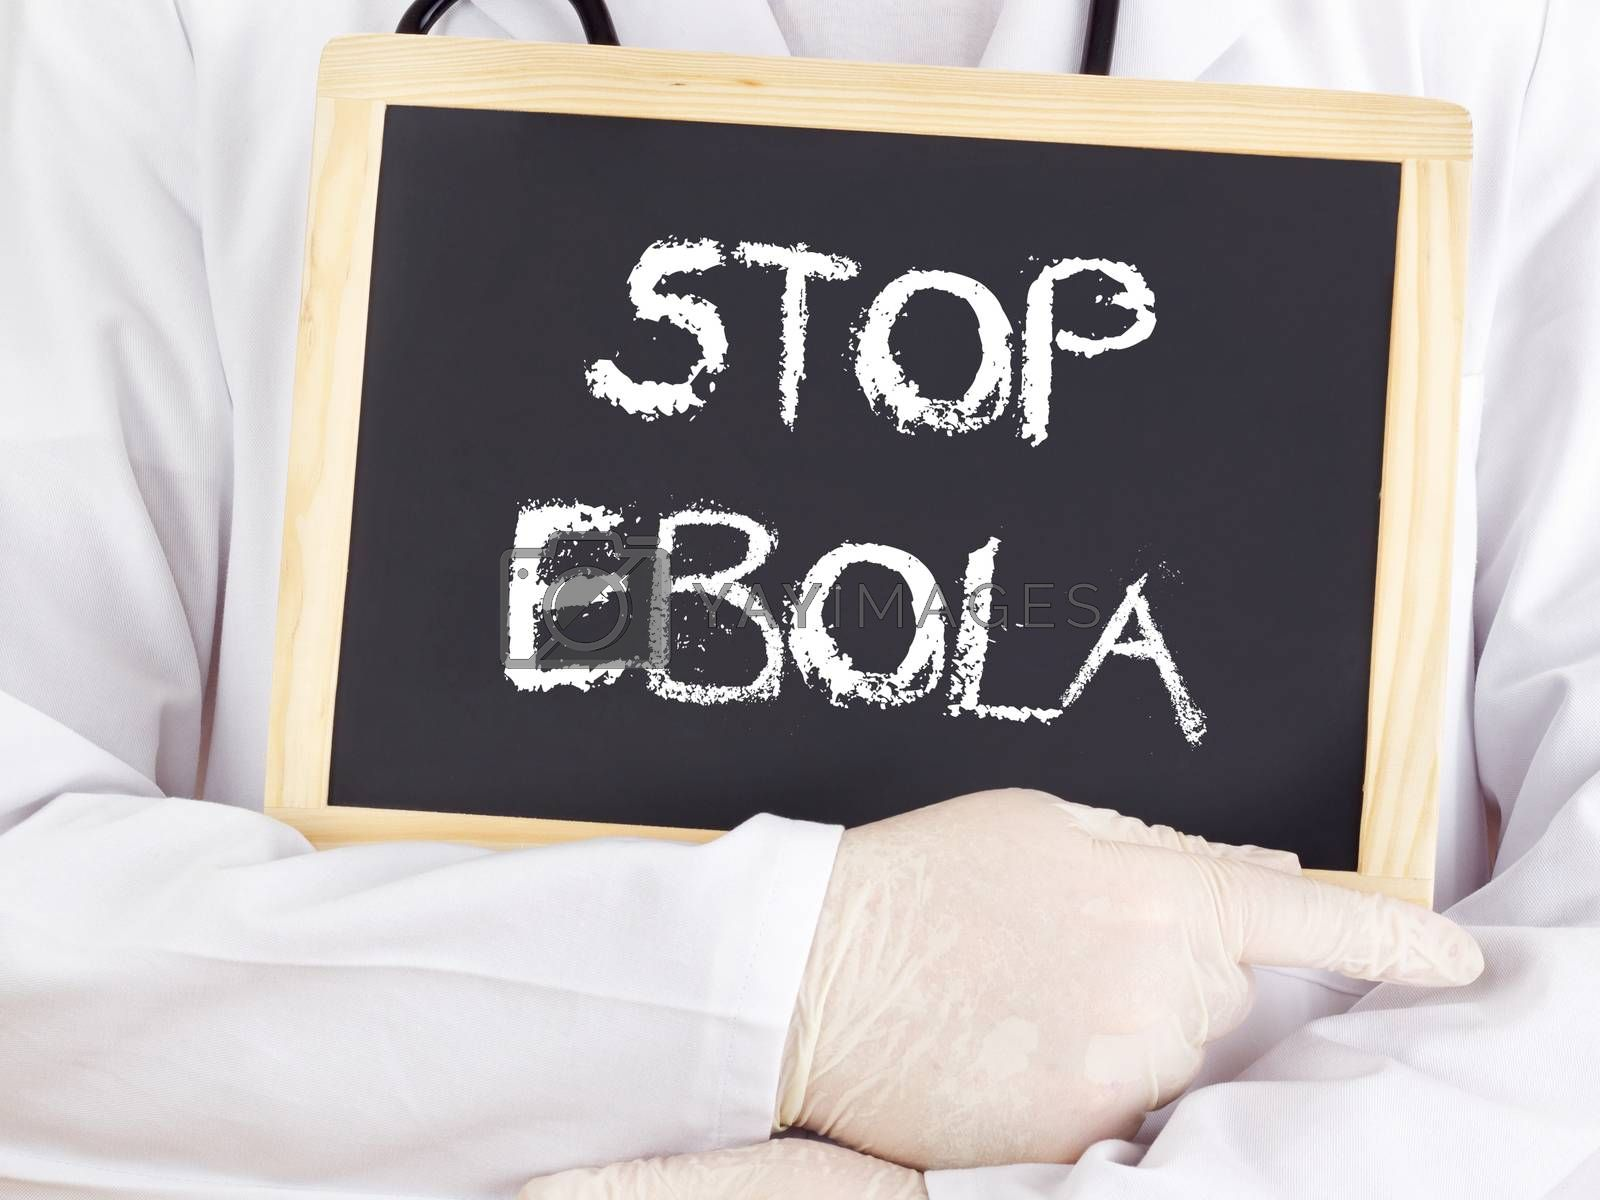 Doctor shows information: stop Ebola by gwolters